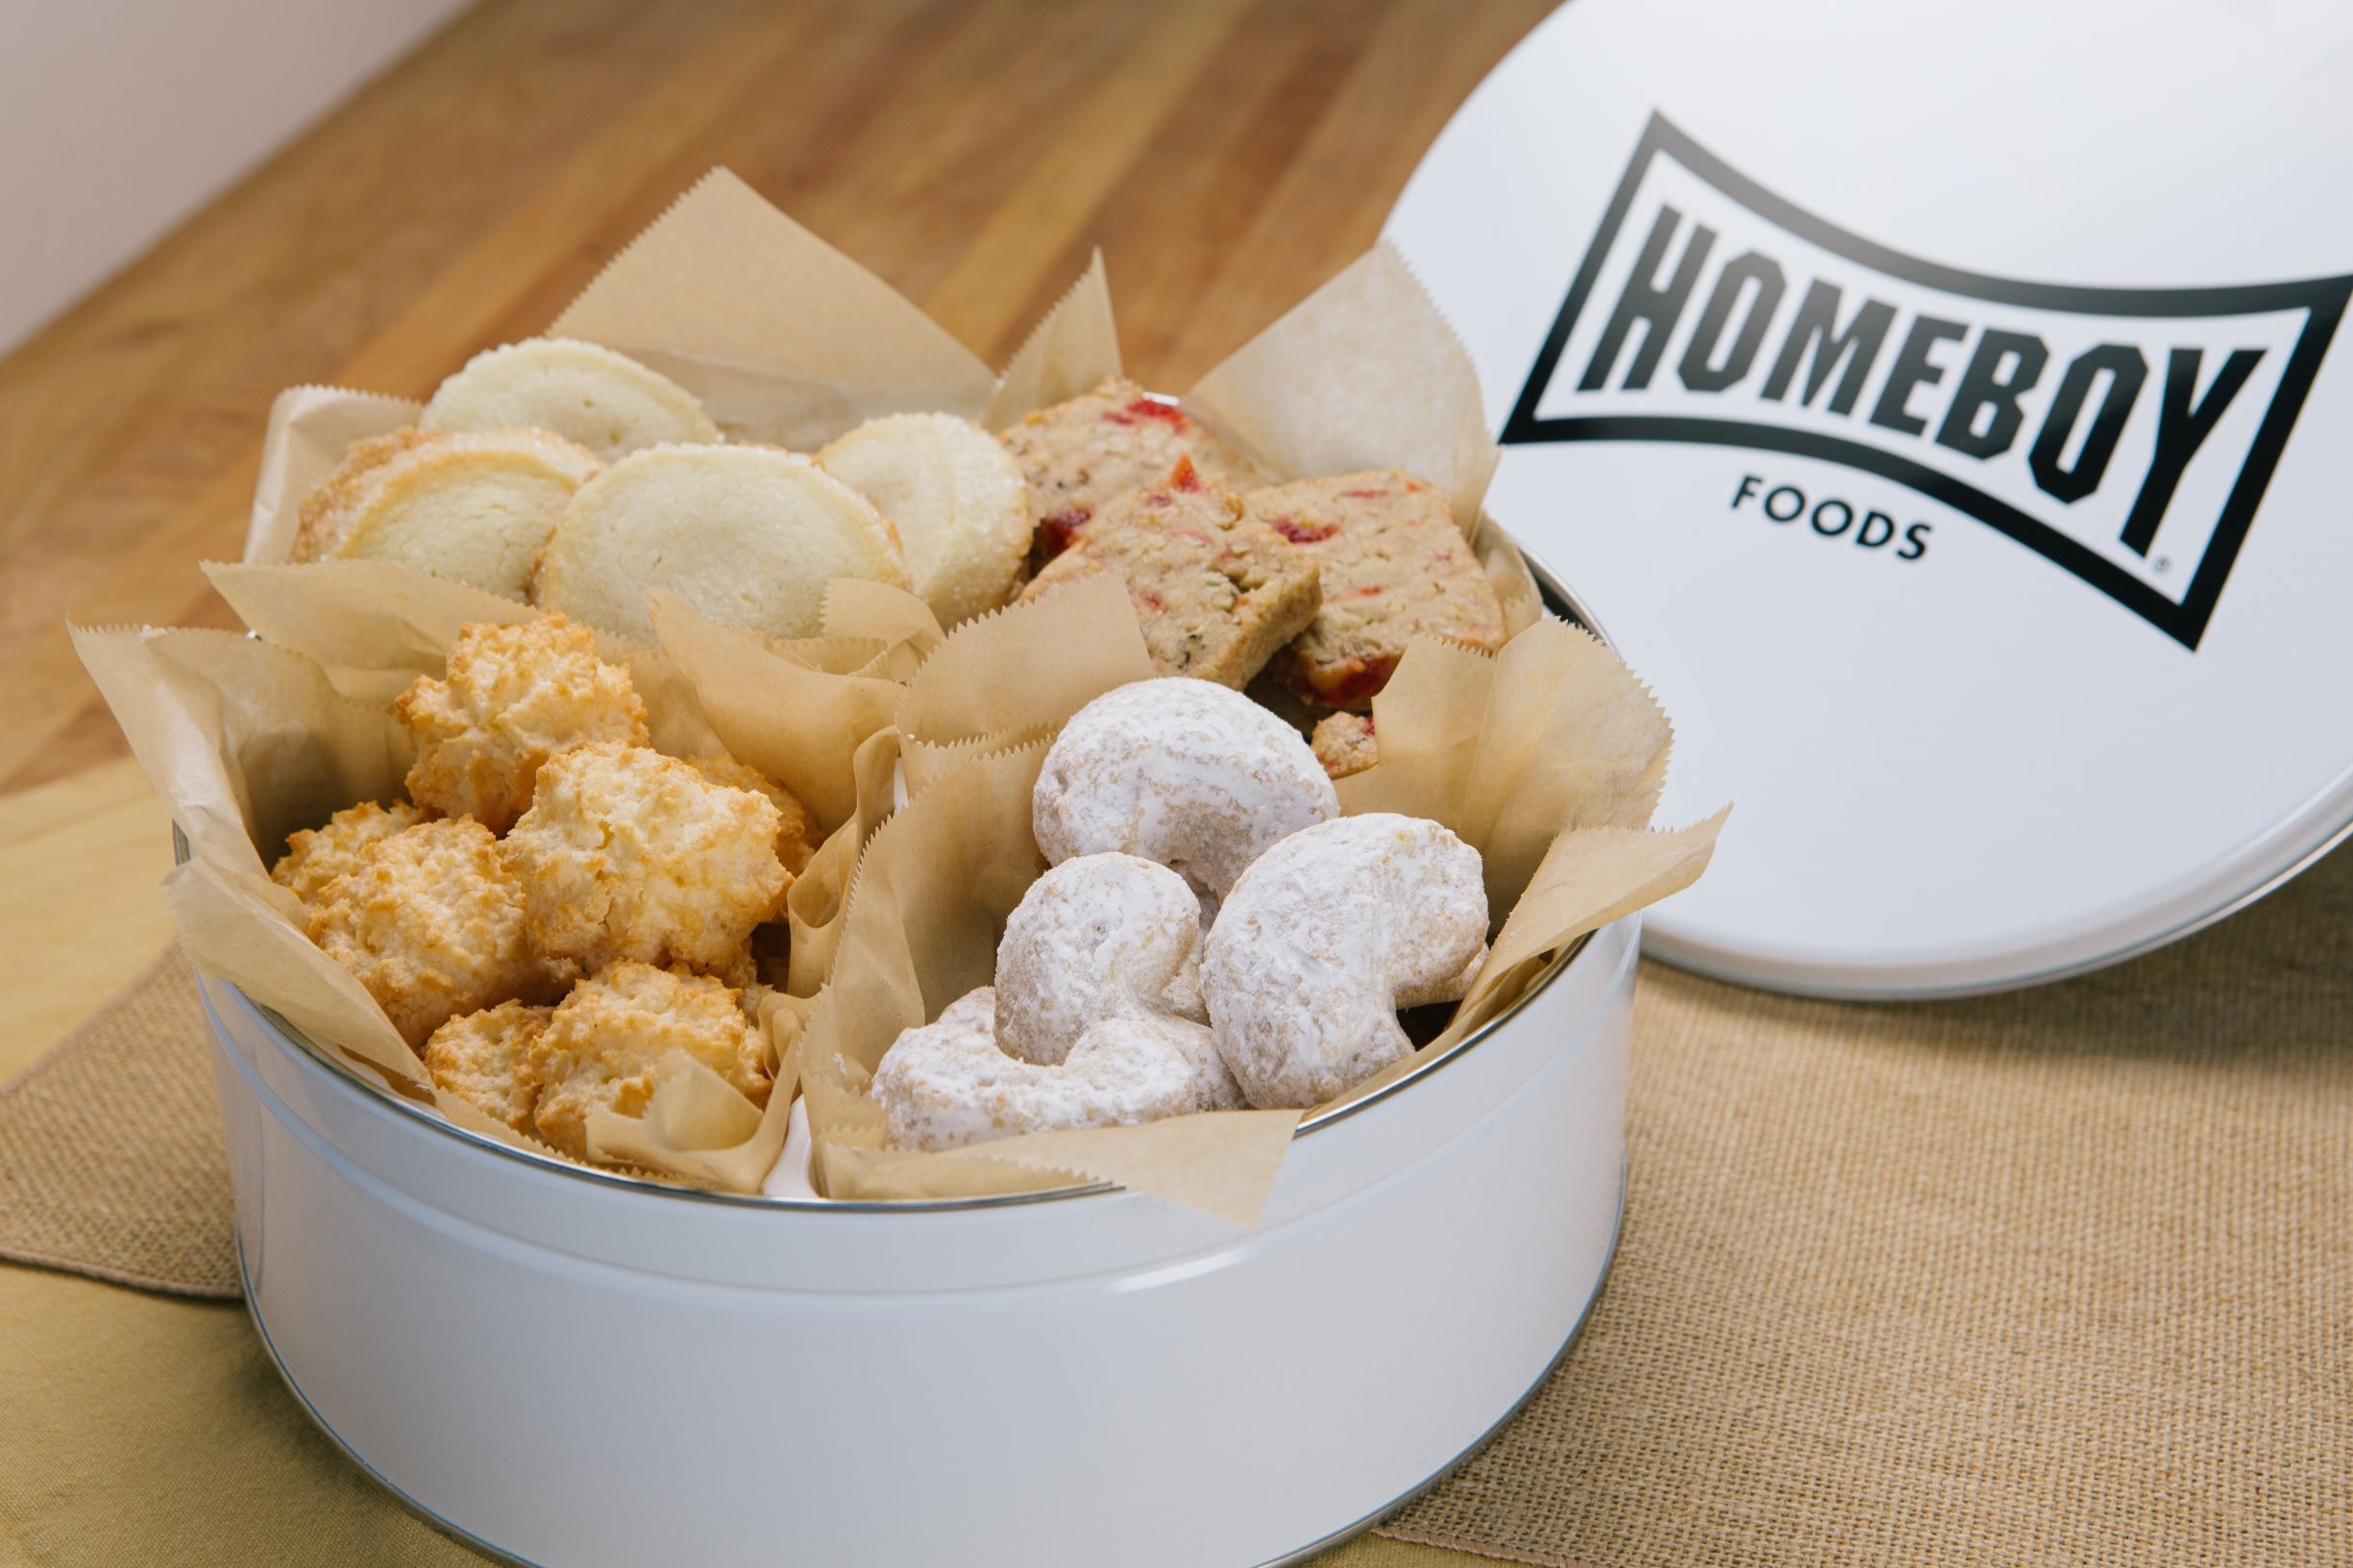 Homeboy Industries baked goods